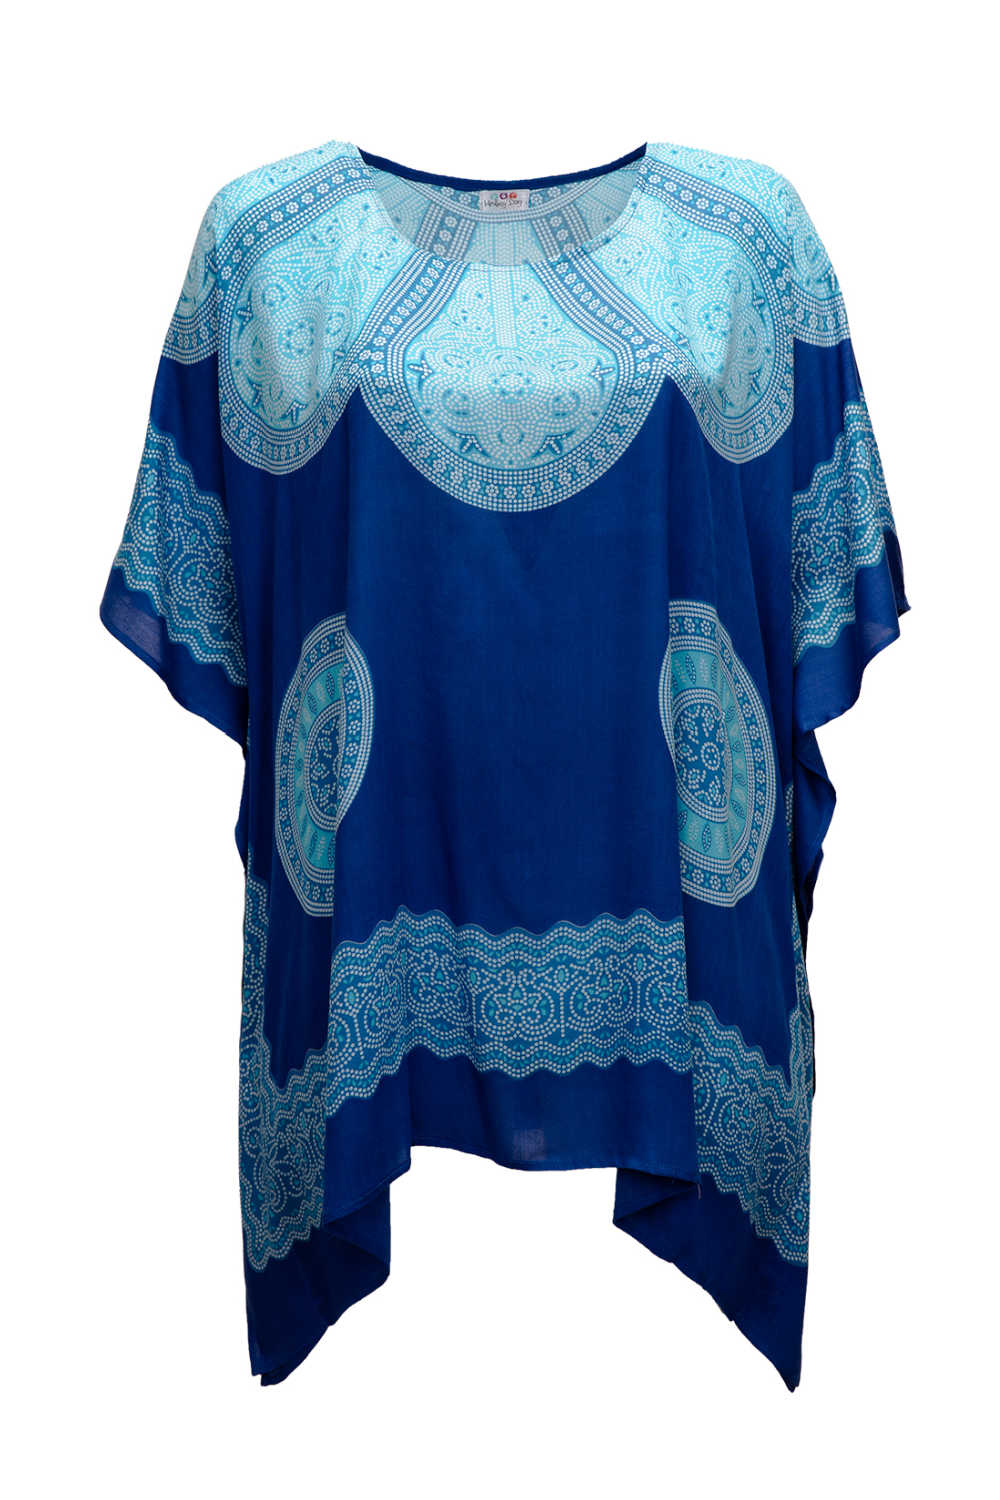 short-kaftan-dress-long-tunic-blue-mandala